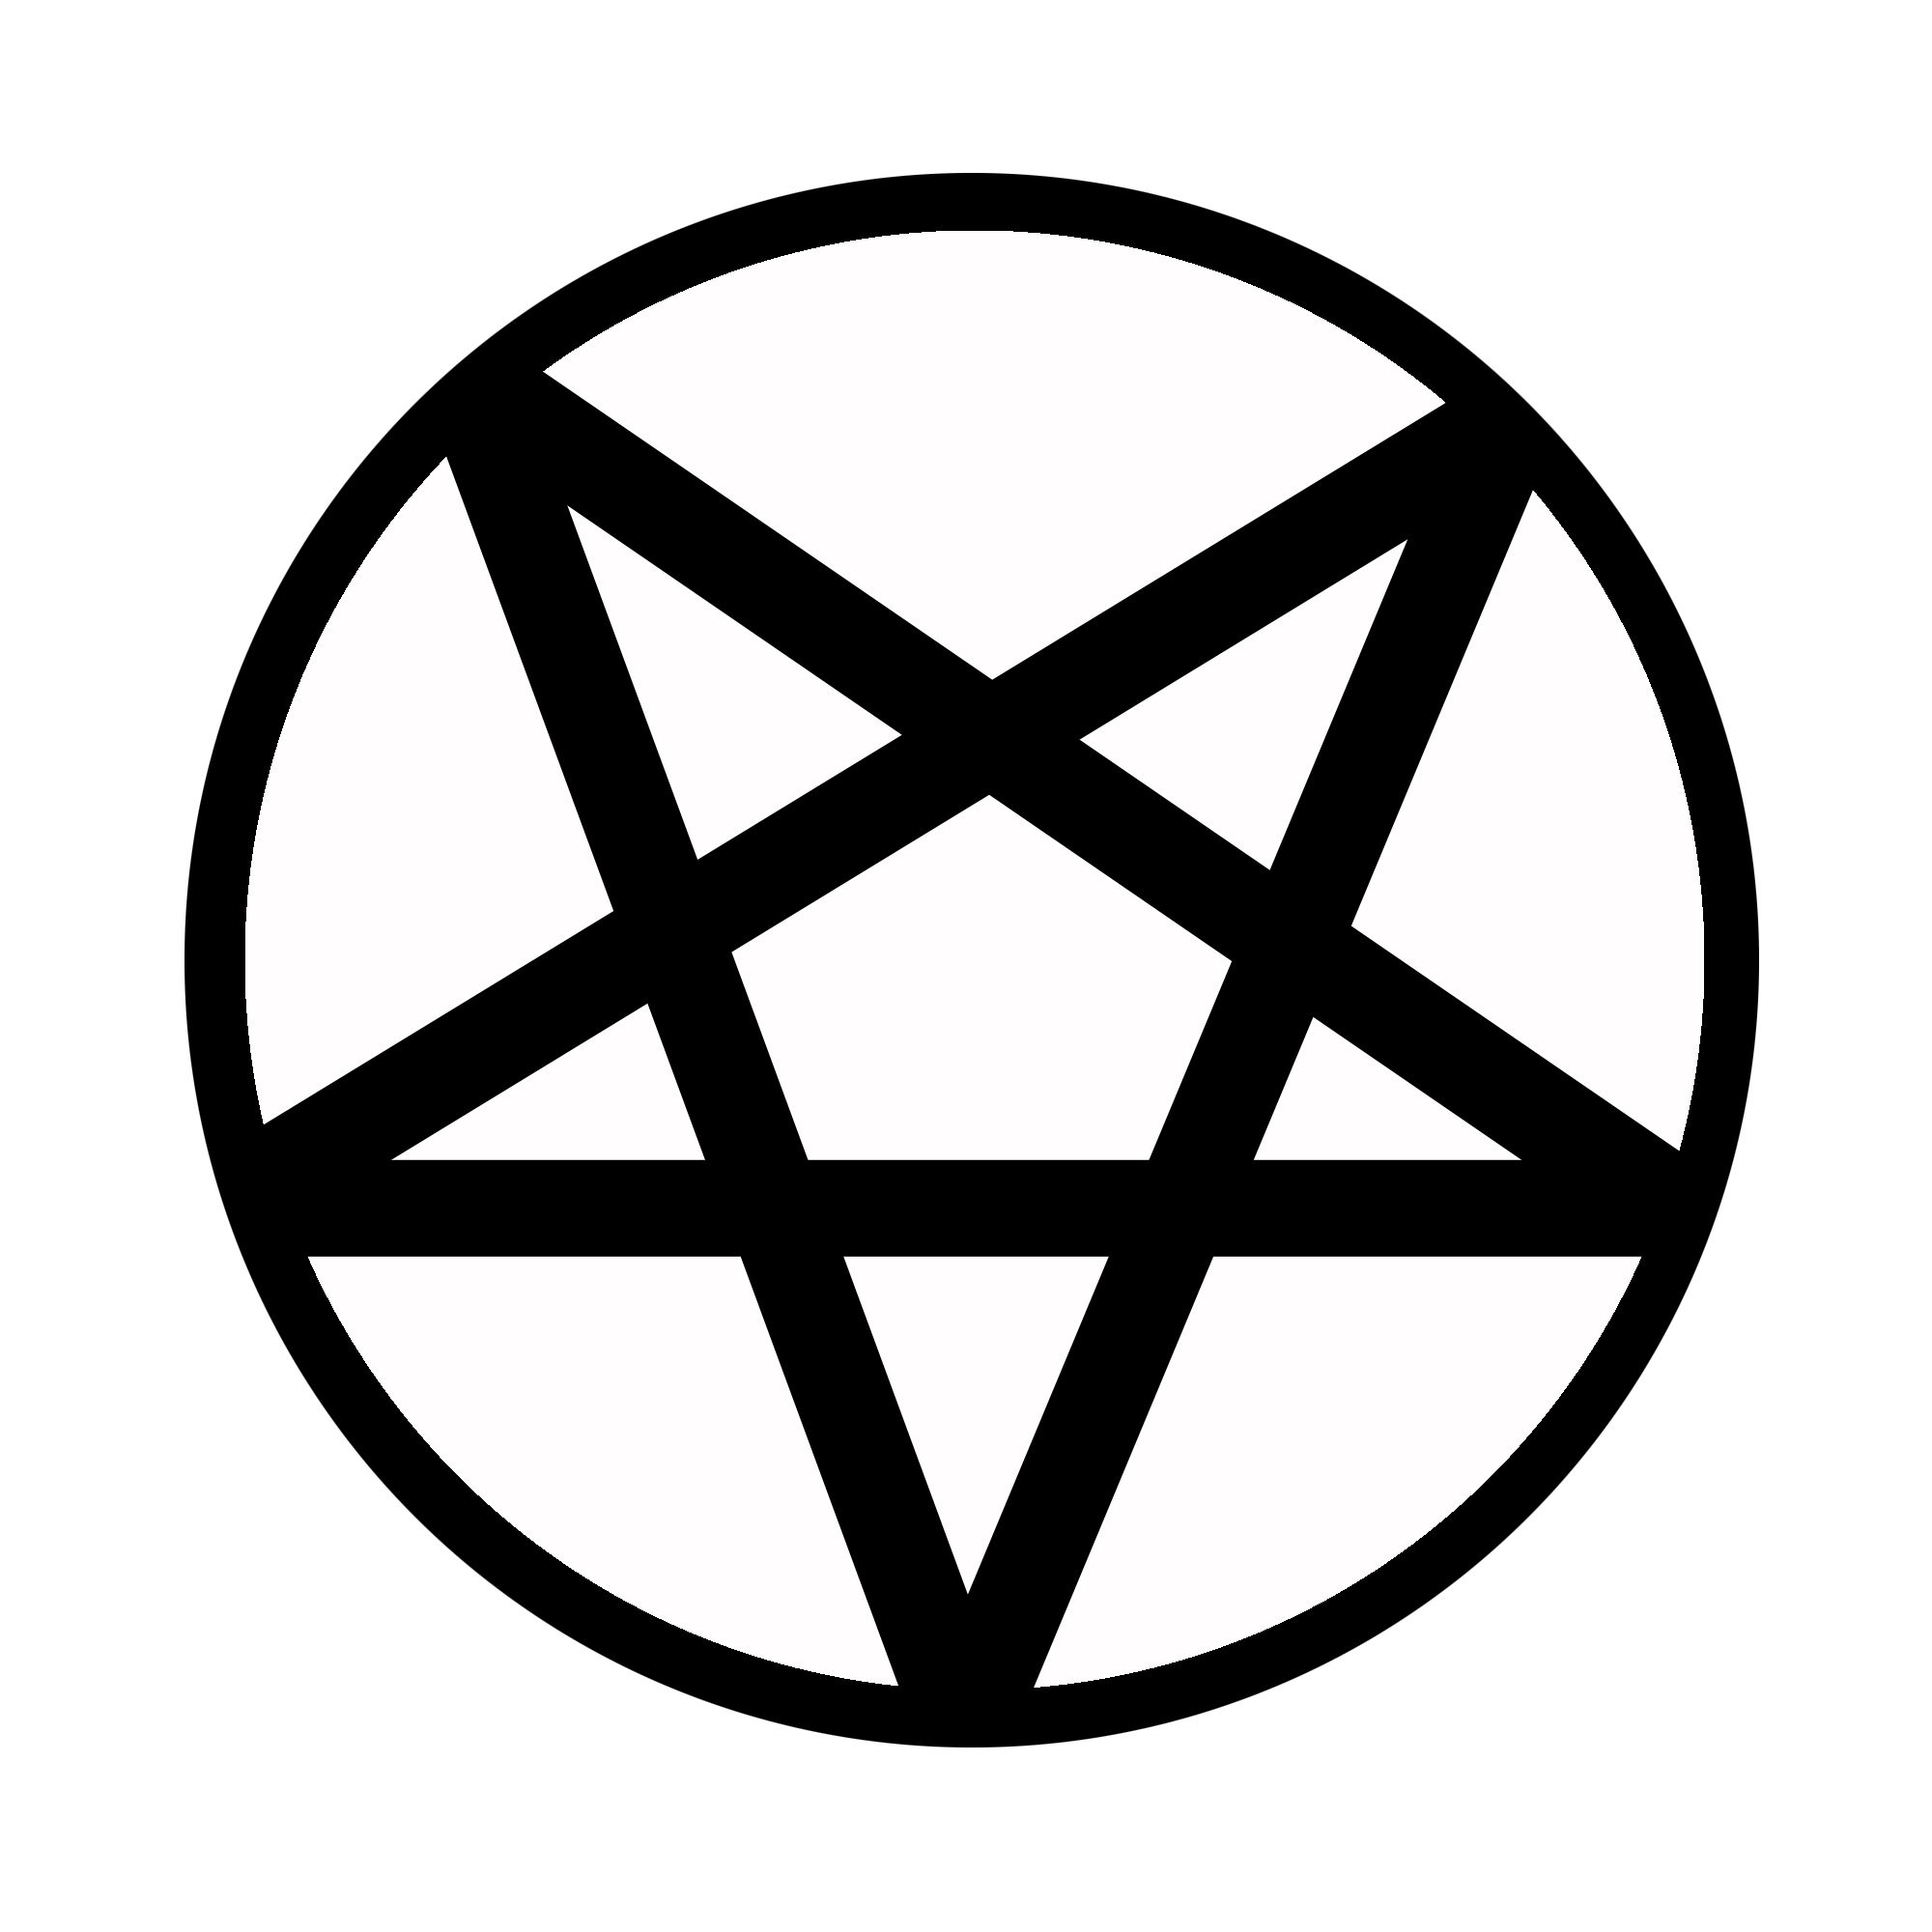 Pentacle clipart image free library Free Pentagram Cliparts, Download Free Clip Art, Free Clip ... image free library